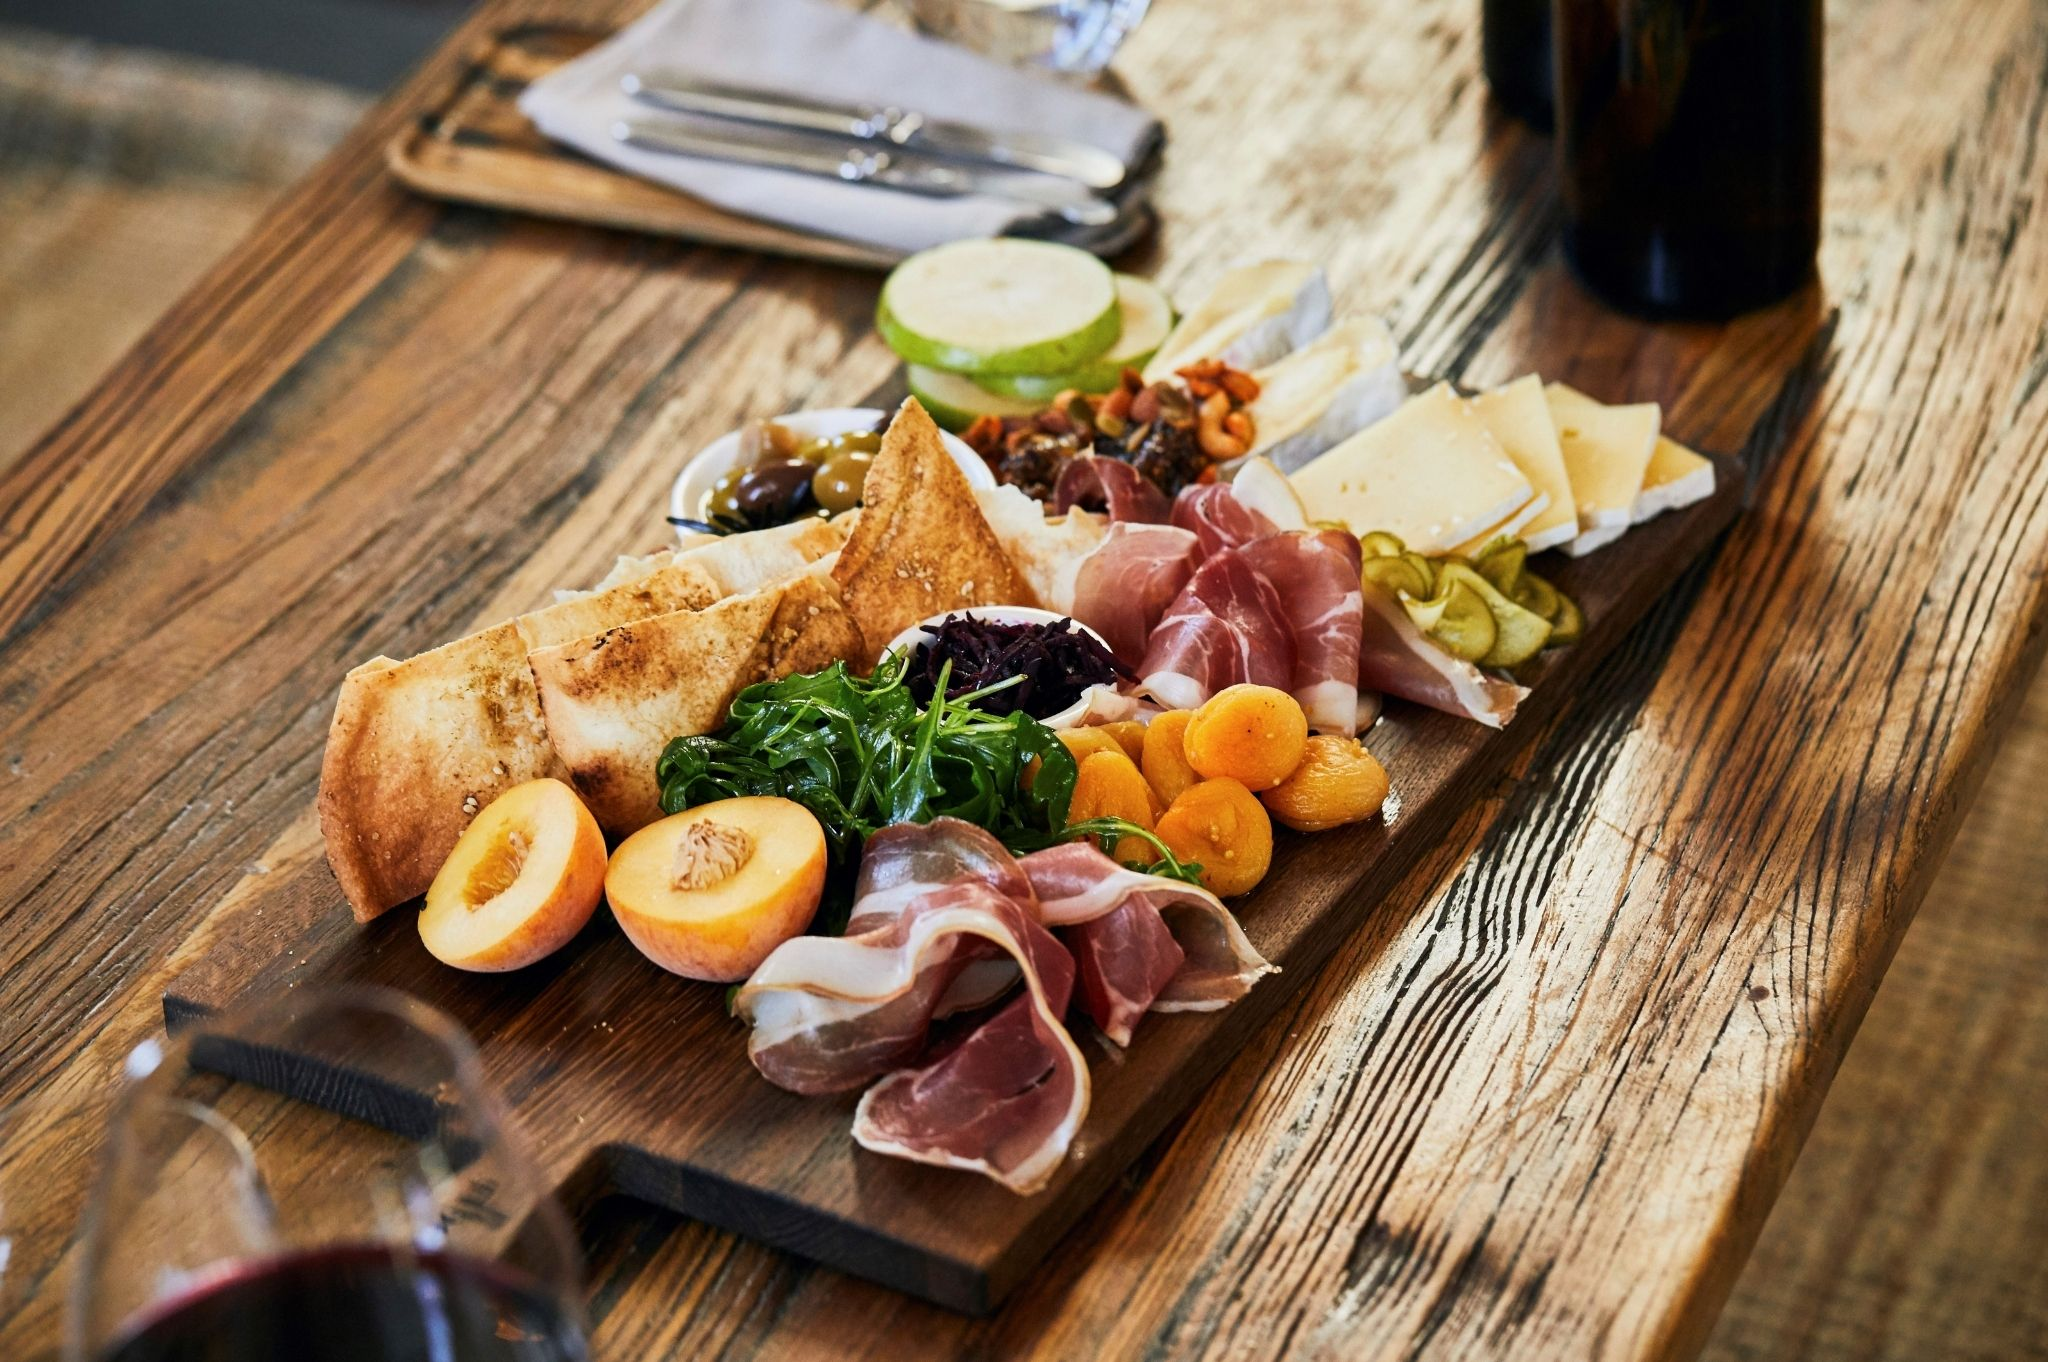 Image of a charcuterie plate at Lowe Wine in Mudgee NSW